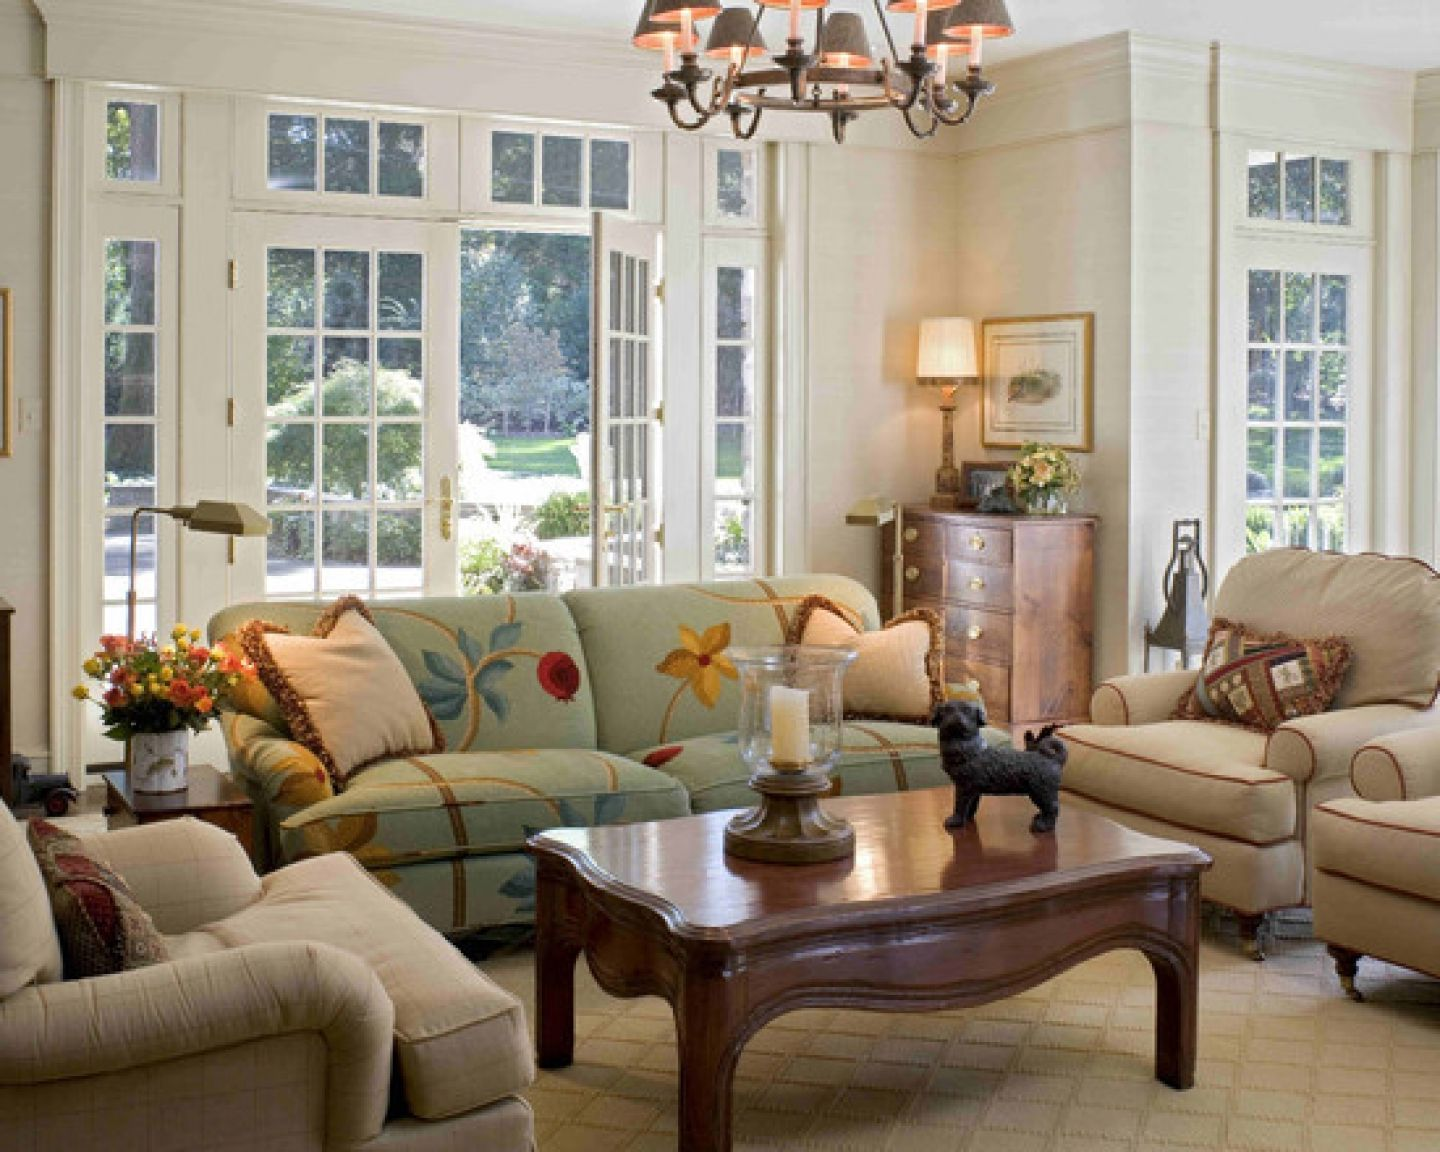 Image of: Country Style Living Room Interior